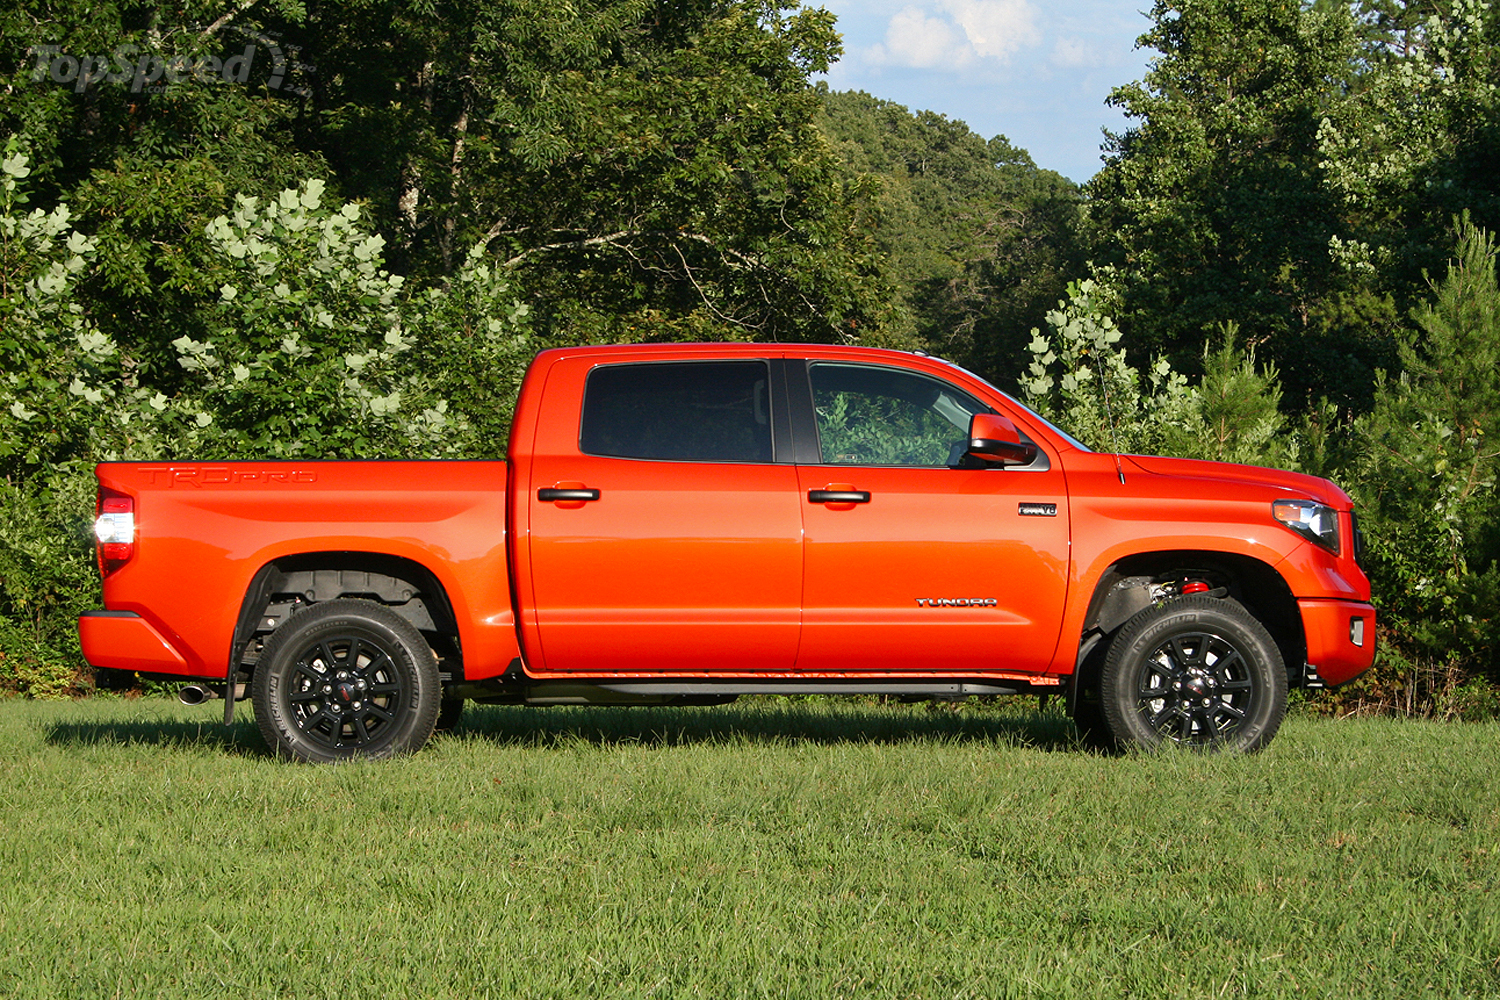 2015 toyota tundra trd pro driven picture 644797 truck review top speed. Black Bedroom Furniture Sets. Home Design Ideas